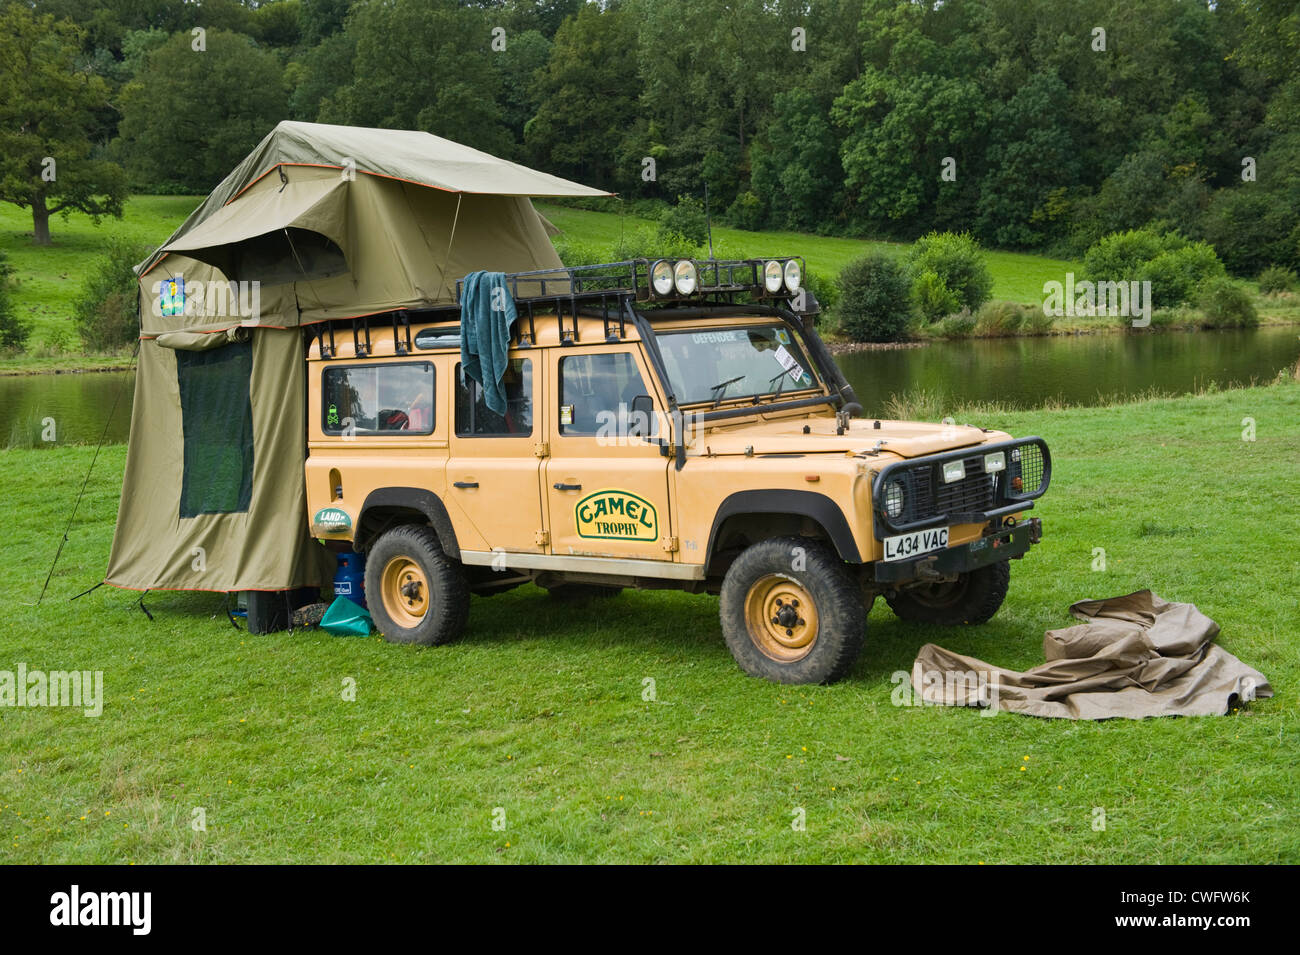 Camel Trophy Land Rover Defender 110 Camping At Lakeside In Stock Photo 50136203 Alamy